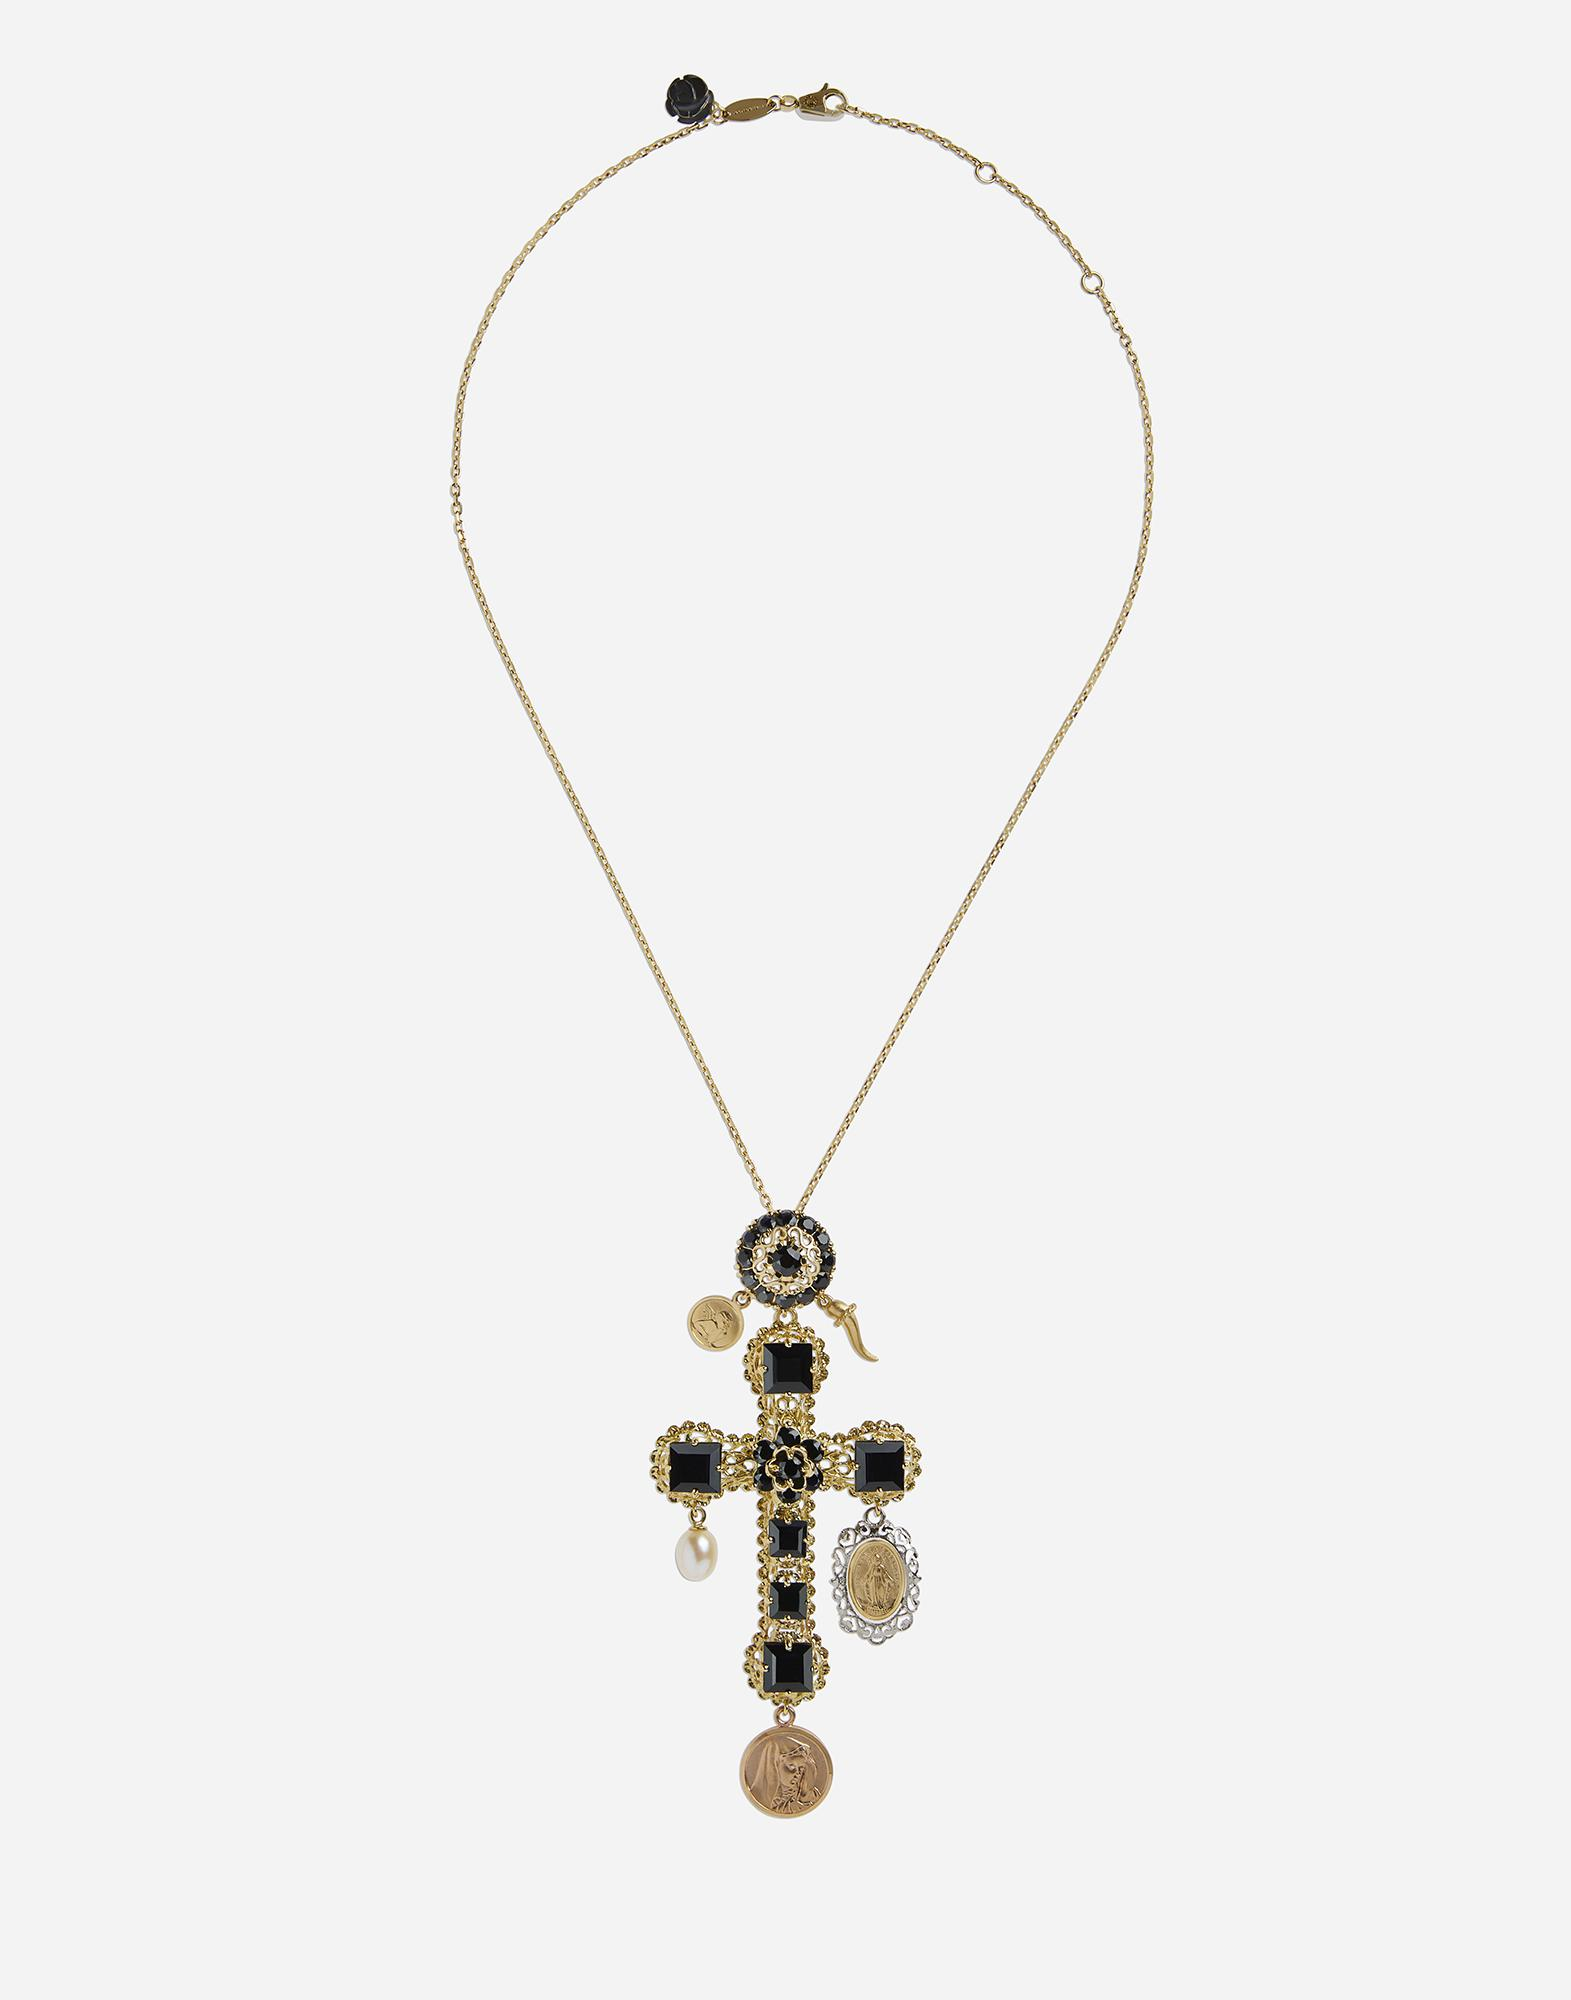 Necklace with sapphire cross charm